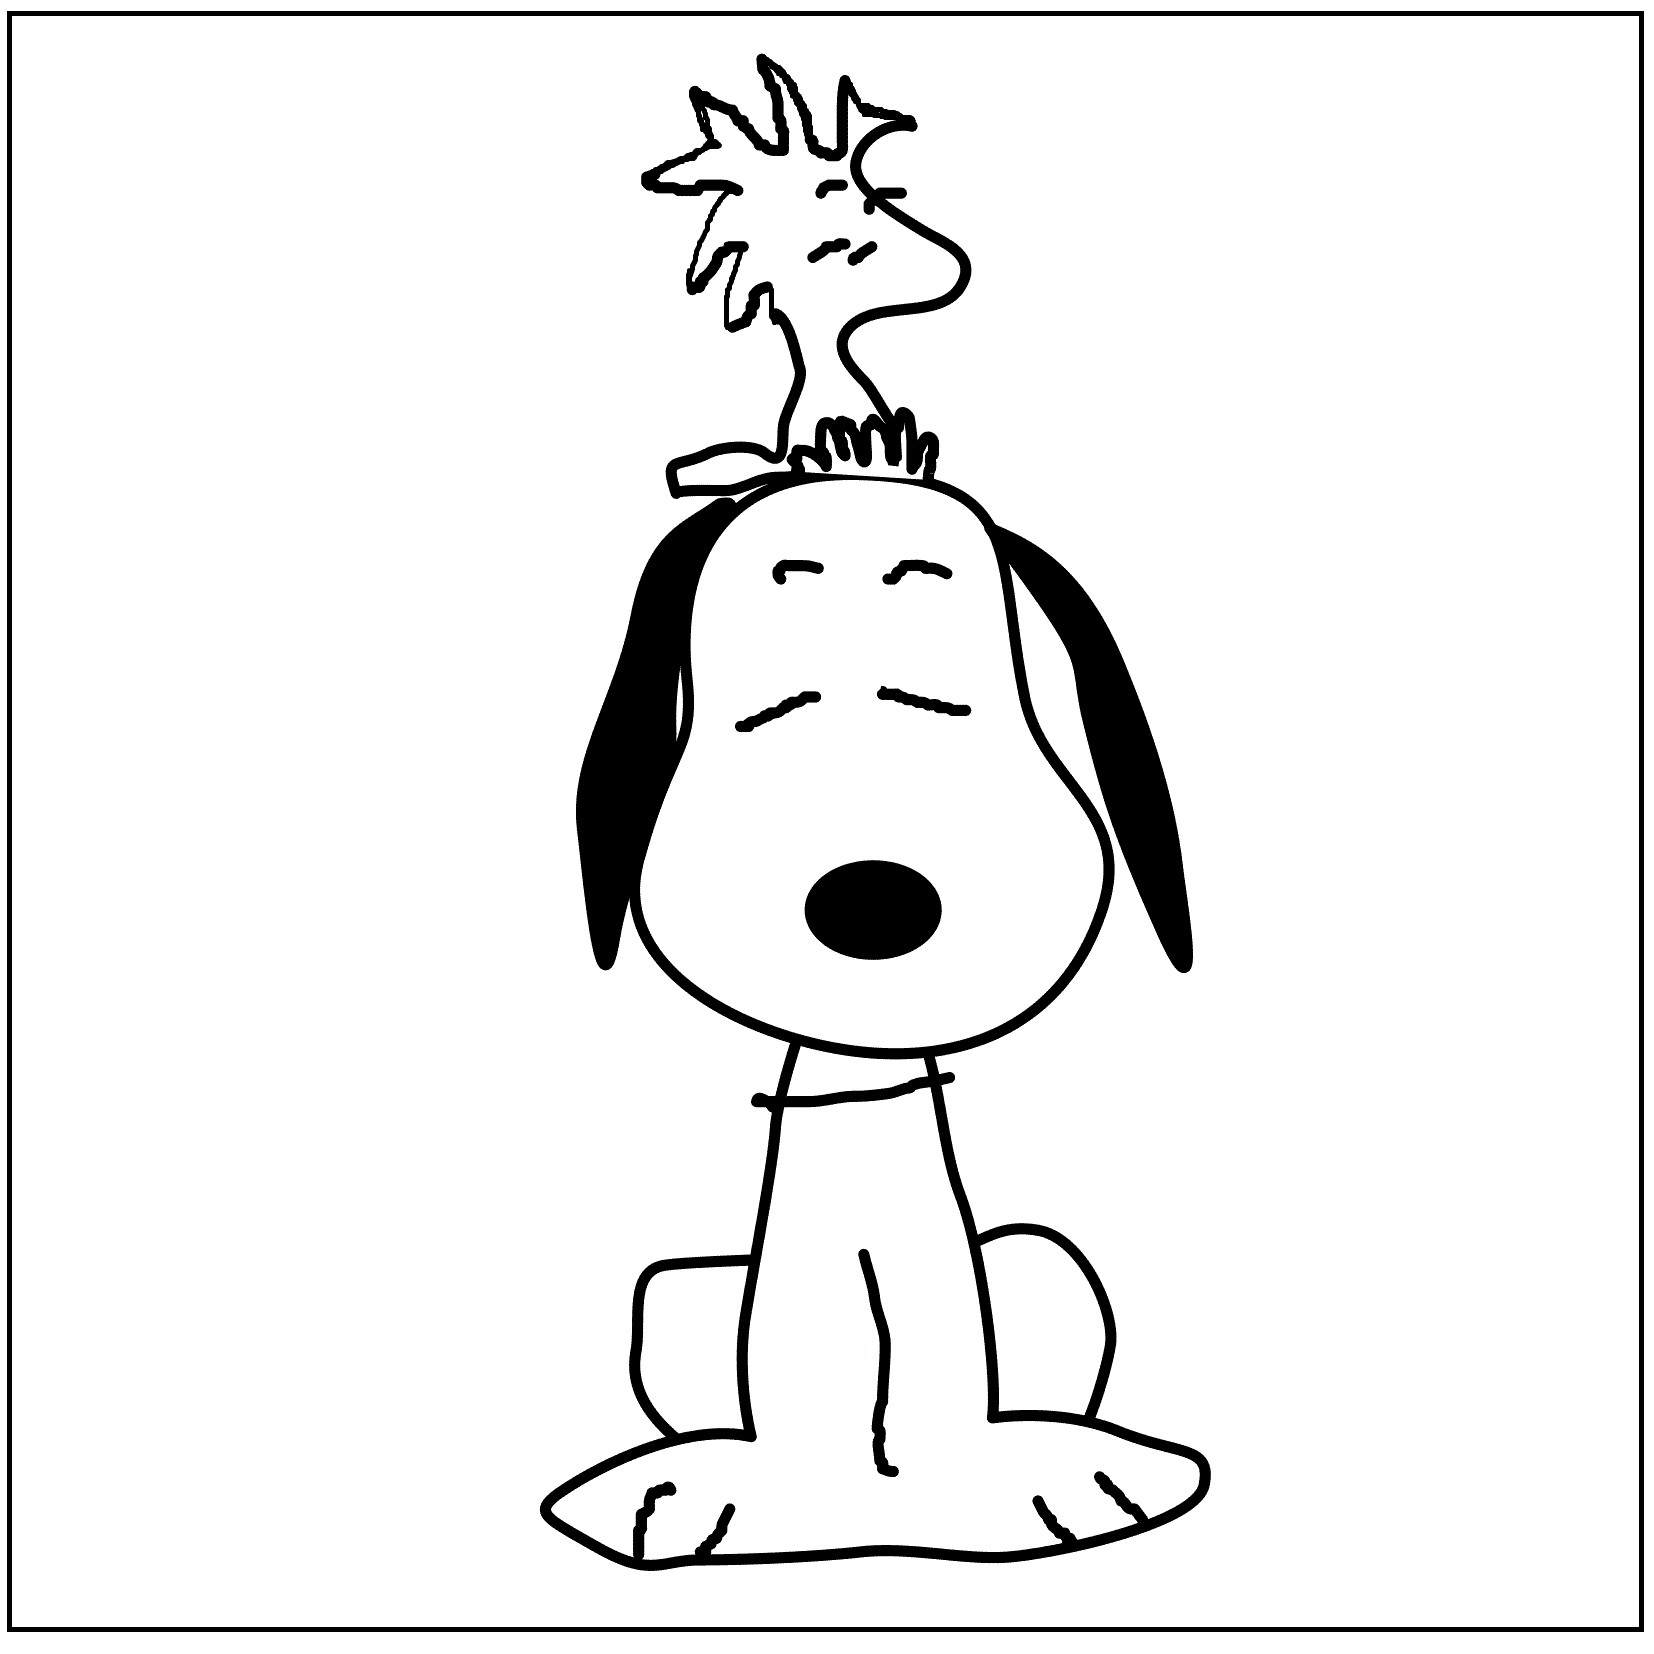 Snoopy And Woodstock Coloring Pages Snoopy And Woodstock Coloring Pages Tingameday